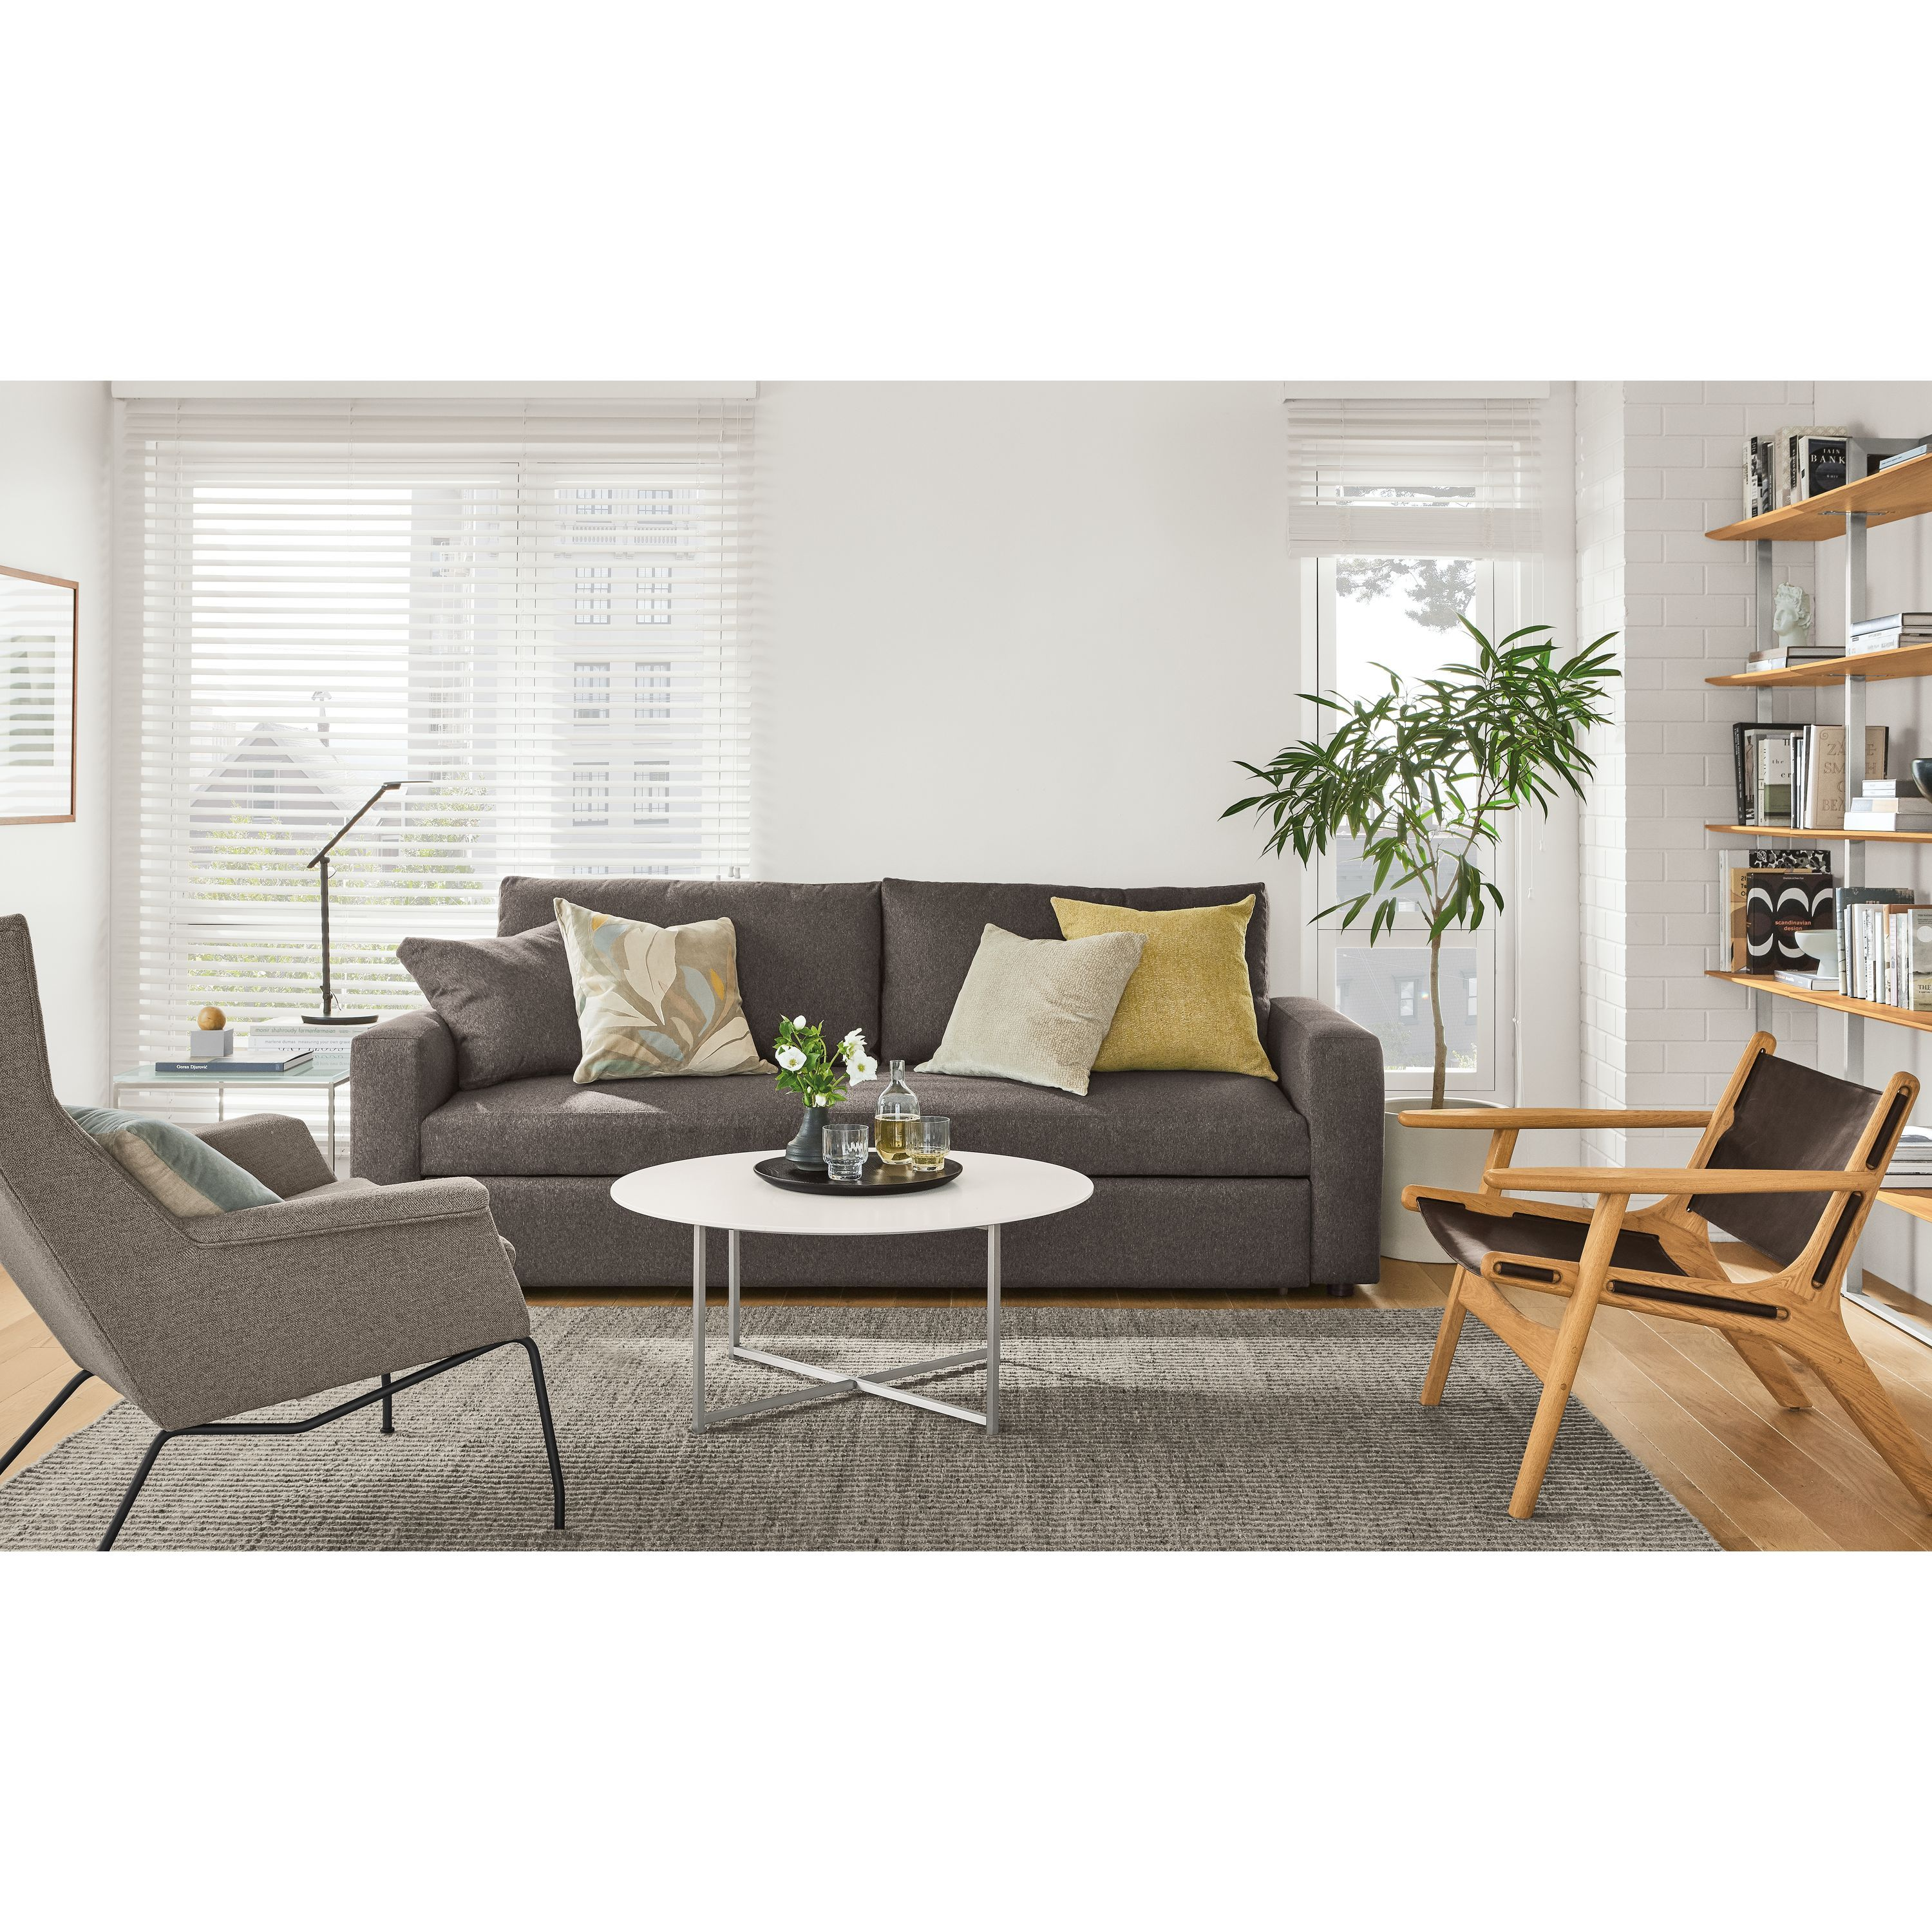 - Room & Board Classic Coffee Tables In Stainless Steel Products